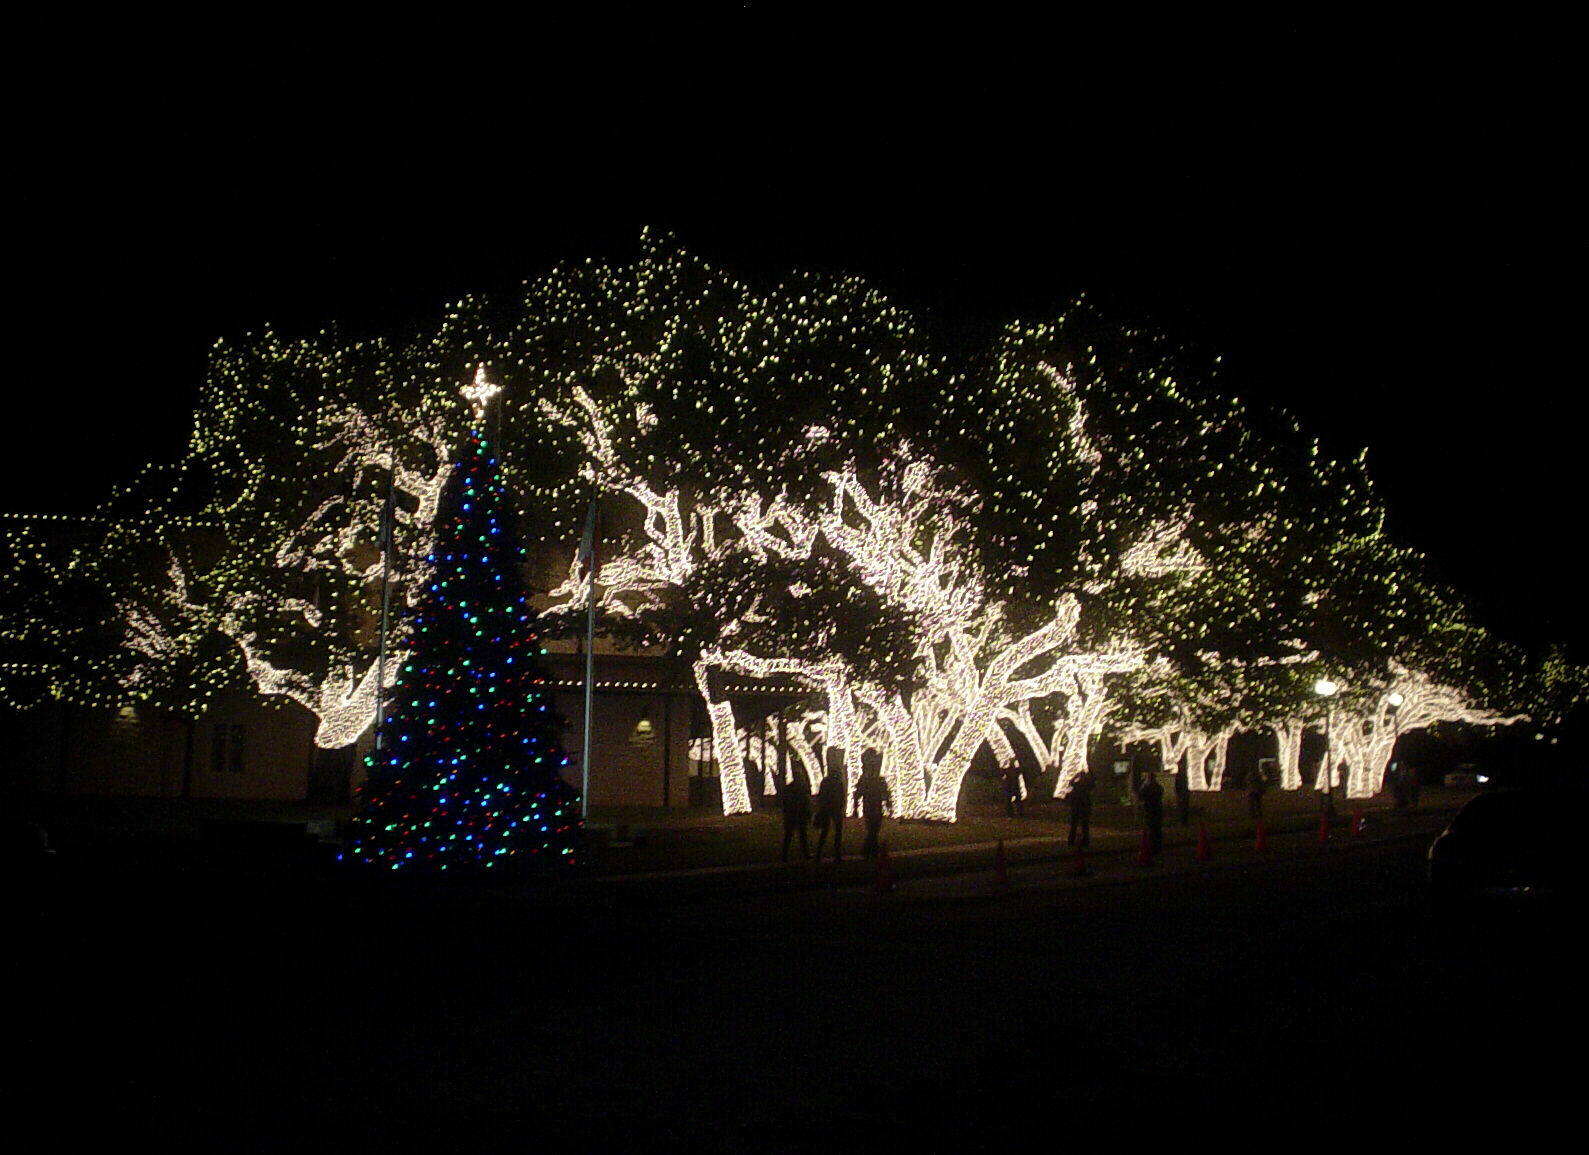 one of the first spectacular displays of christmas lights youll see in johnson city is this lighted grove of trees on the pedernales electric companys